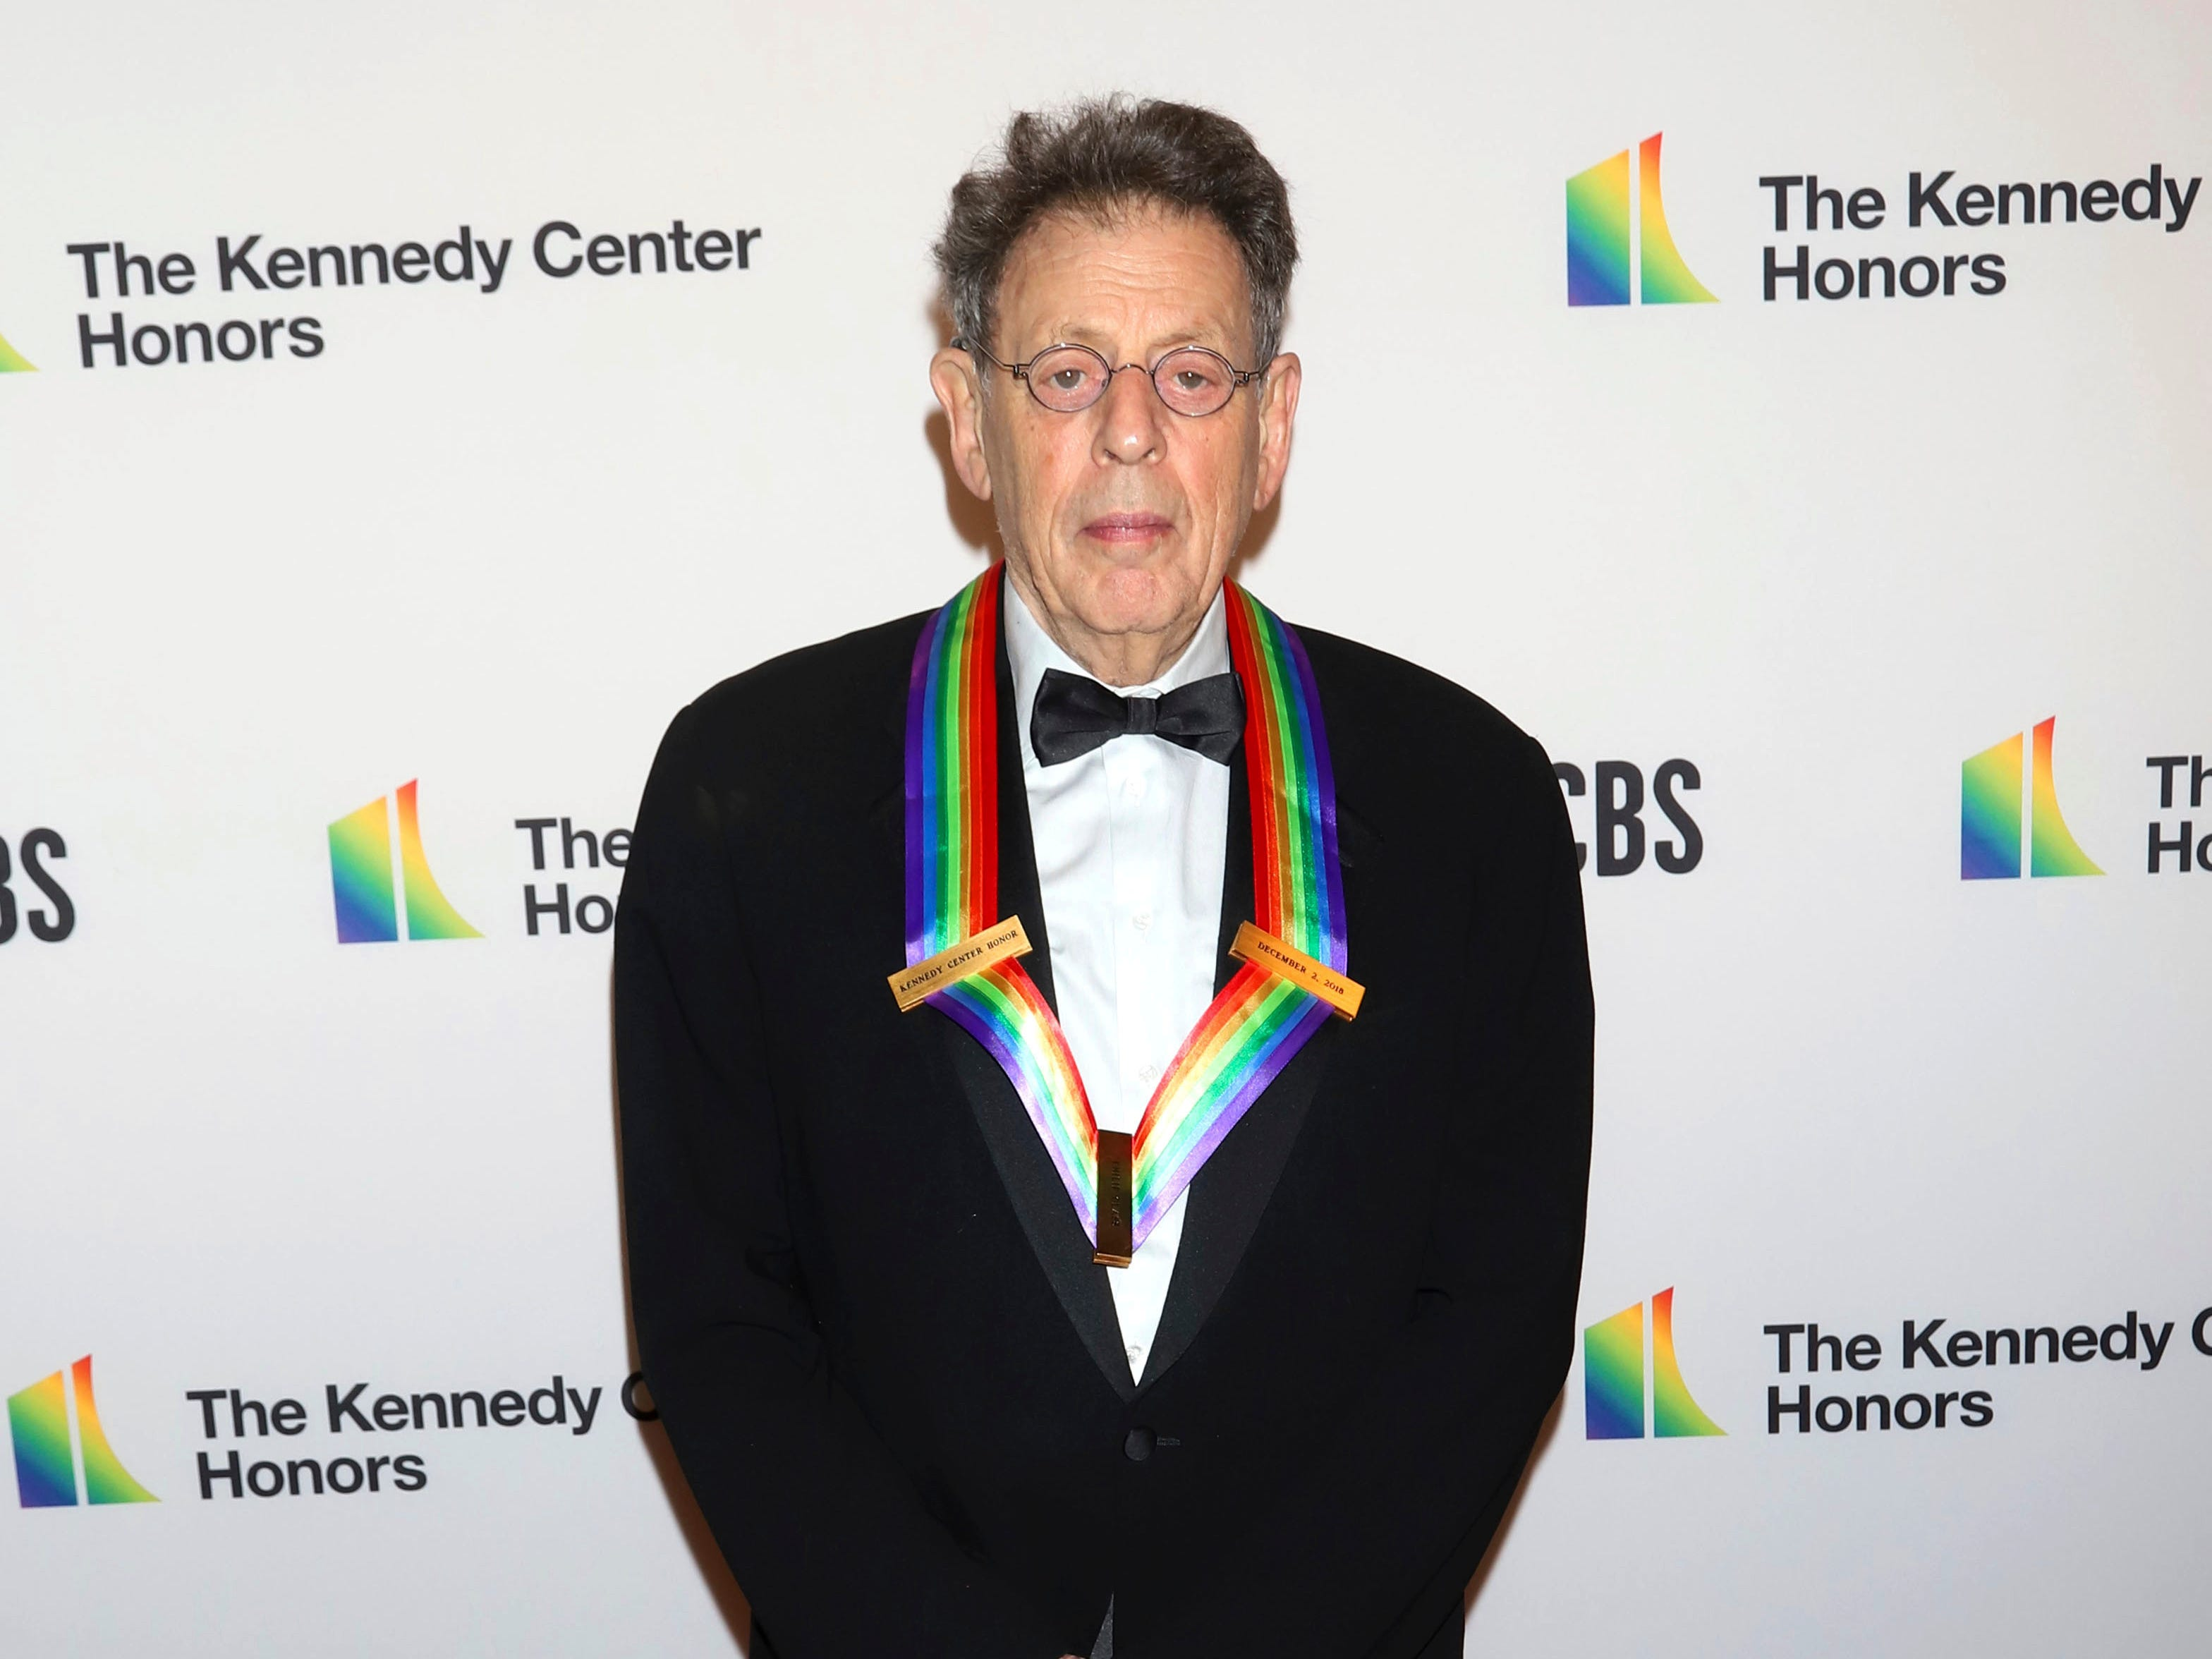 2018 Kennedy Center Honoree Philip Glass attends the 41st Annual Kennedy Center Honors at The Kennedy Center on Sunday, Dec. 2, 2018, in Washington. (Photo by Greg Allen/Invision/AP) ORG XMIT: NYGA102